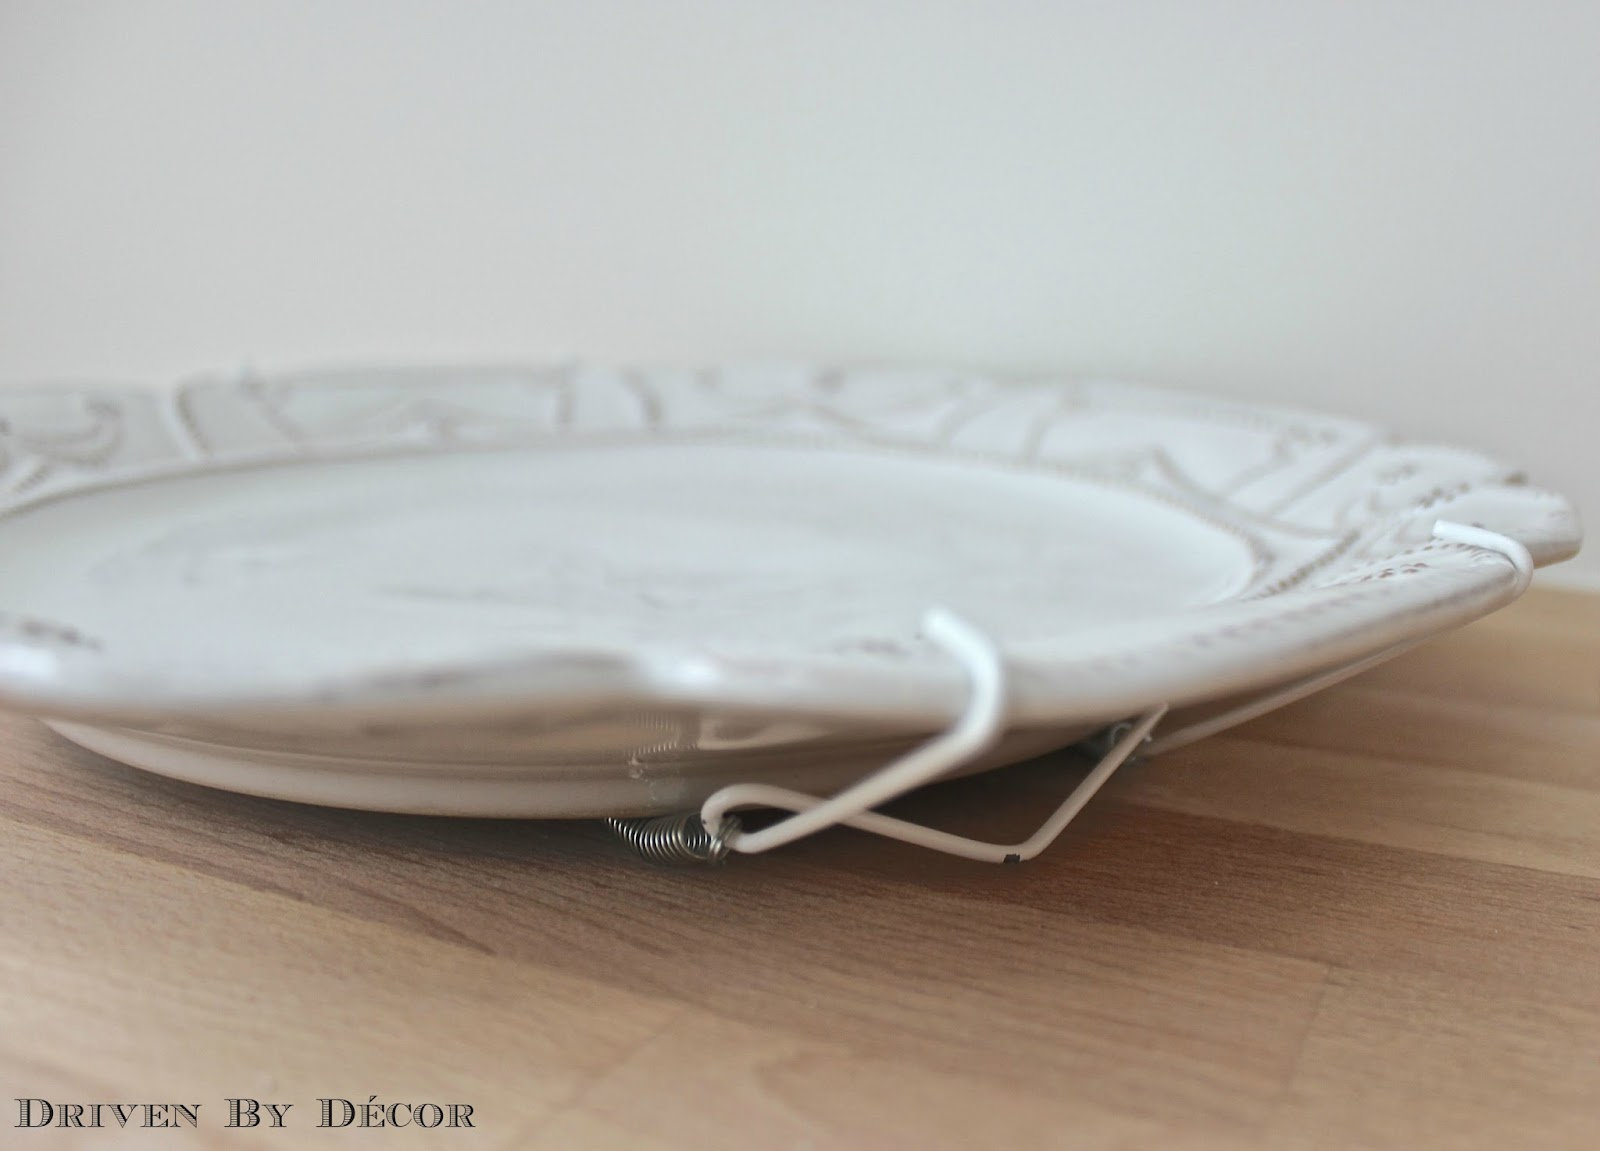 Once all of your plates have hangers it\u0027s time to get them up on the wall! I used OOK picture hooks \u2013 hook your OOK hook onto the wire hanger that is ... & How To Hang Plates on the Wall (The Best Hangers \u0026 More!) | Driven ...